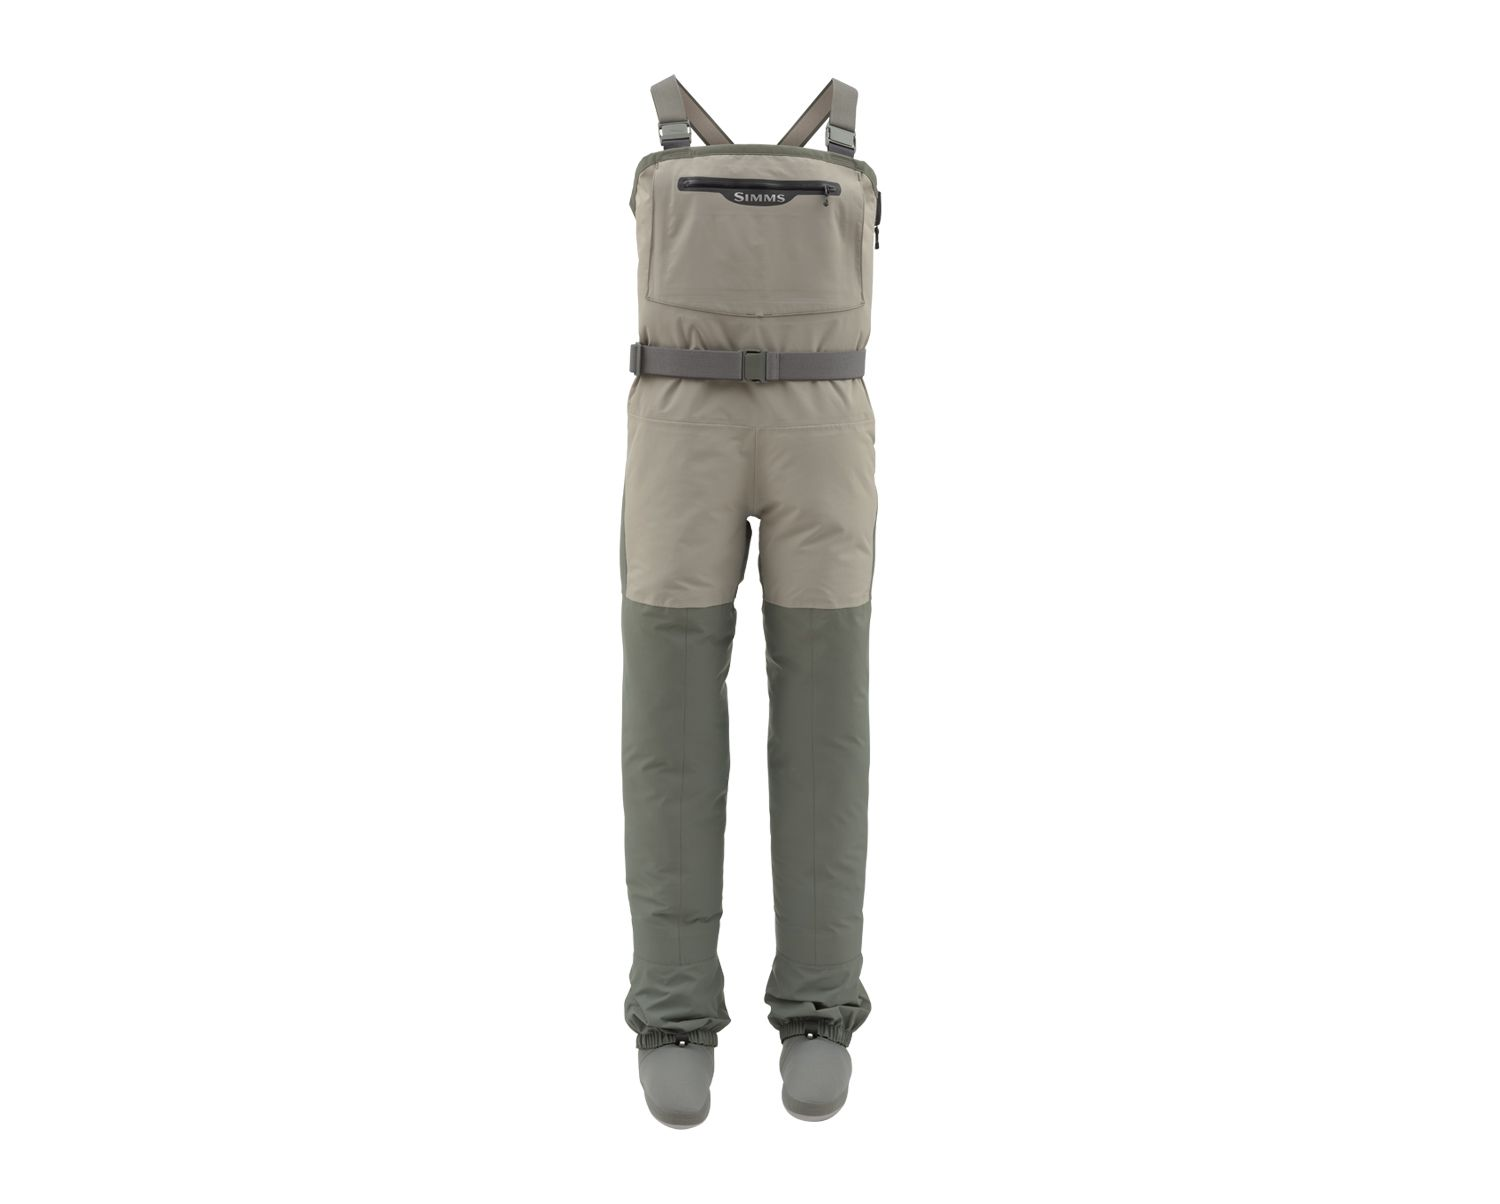 Simms Womens Freestone Z Stockingfoot Wader